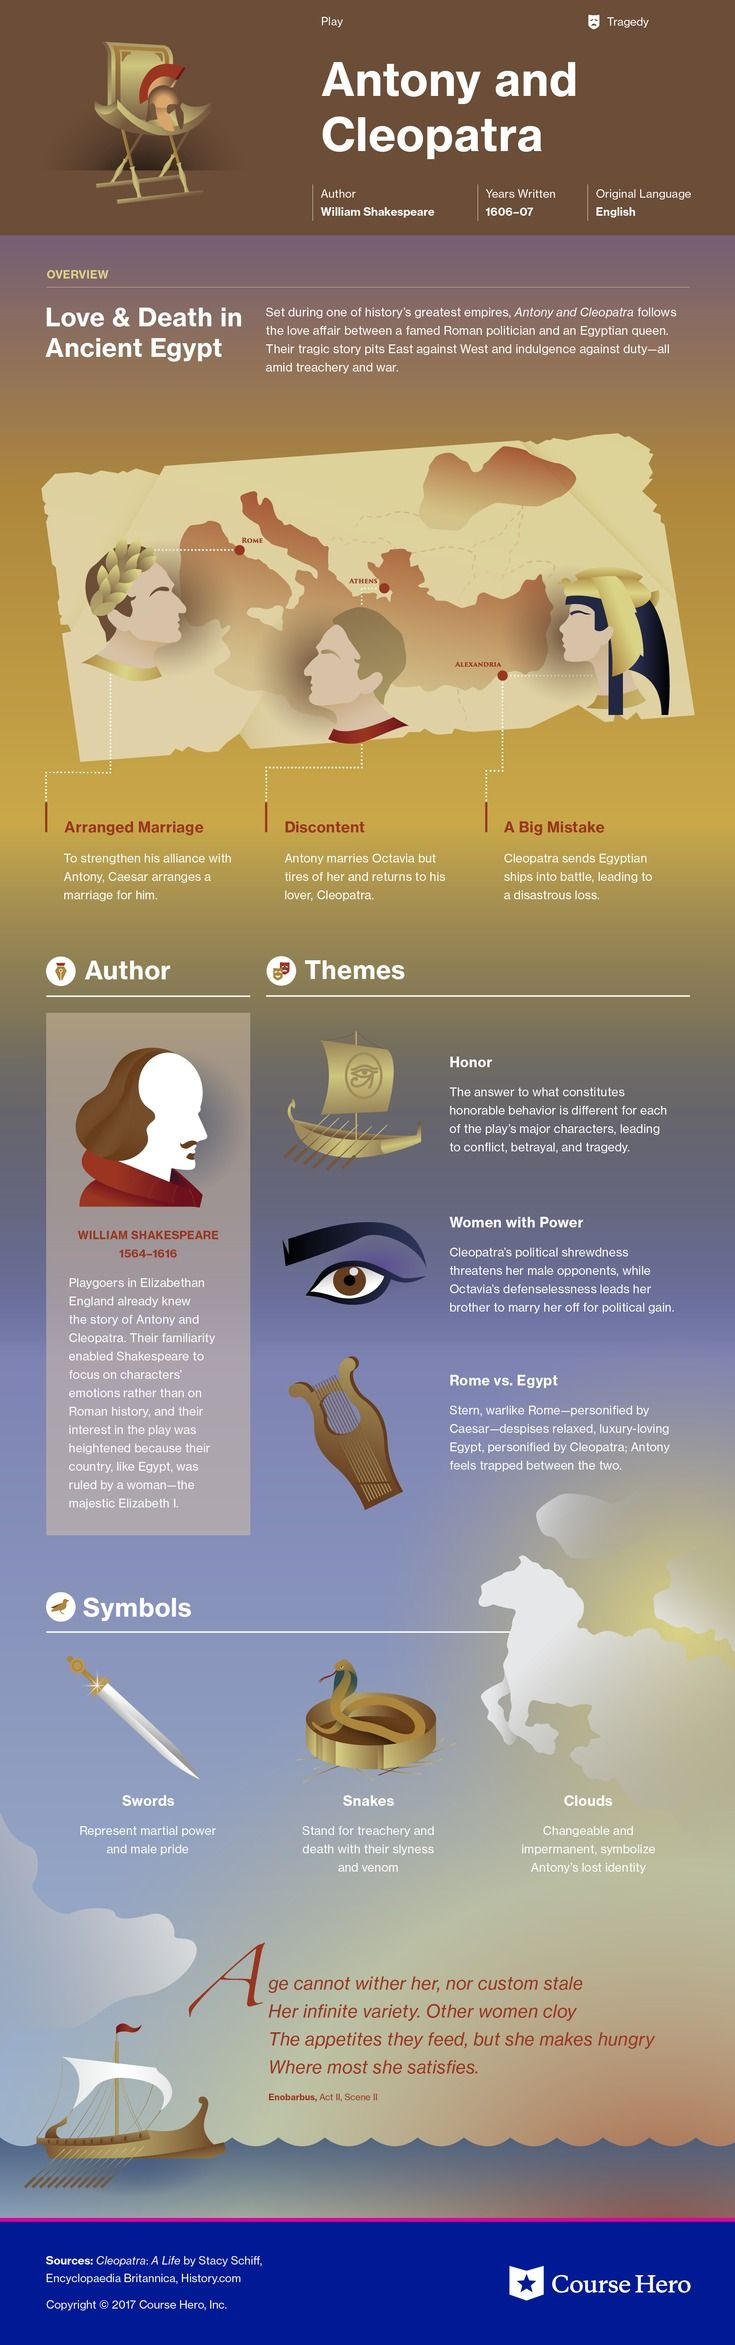 This @CourseHero infographic on Antony and Cleopatra is both visually stunning and informative!